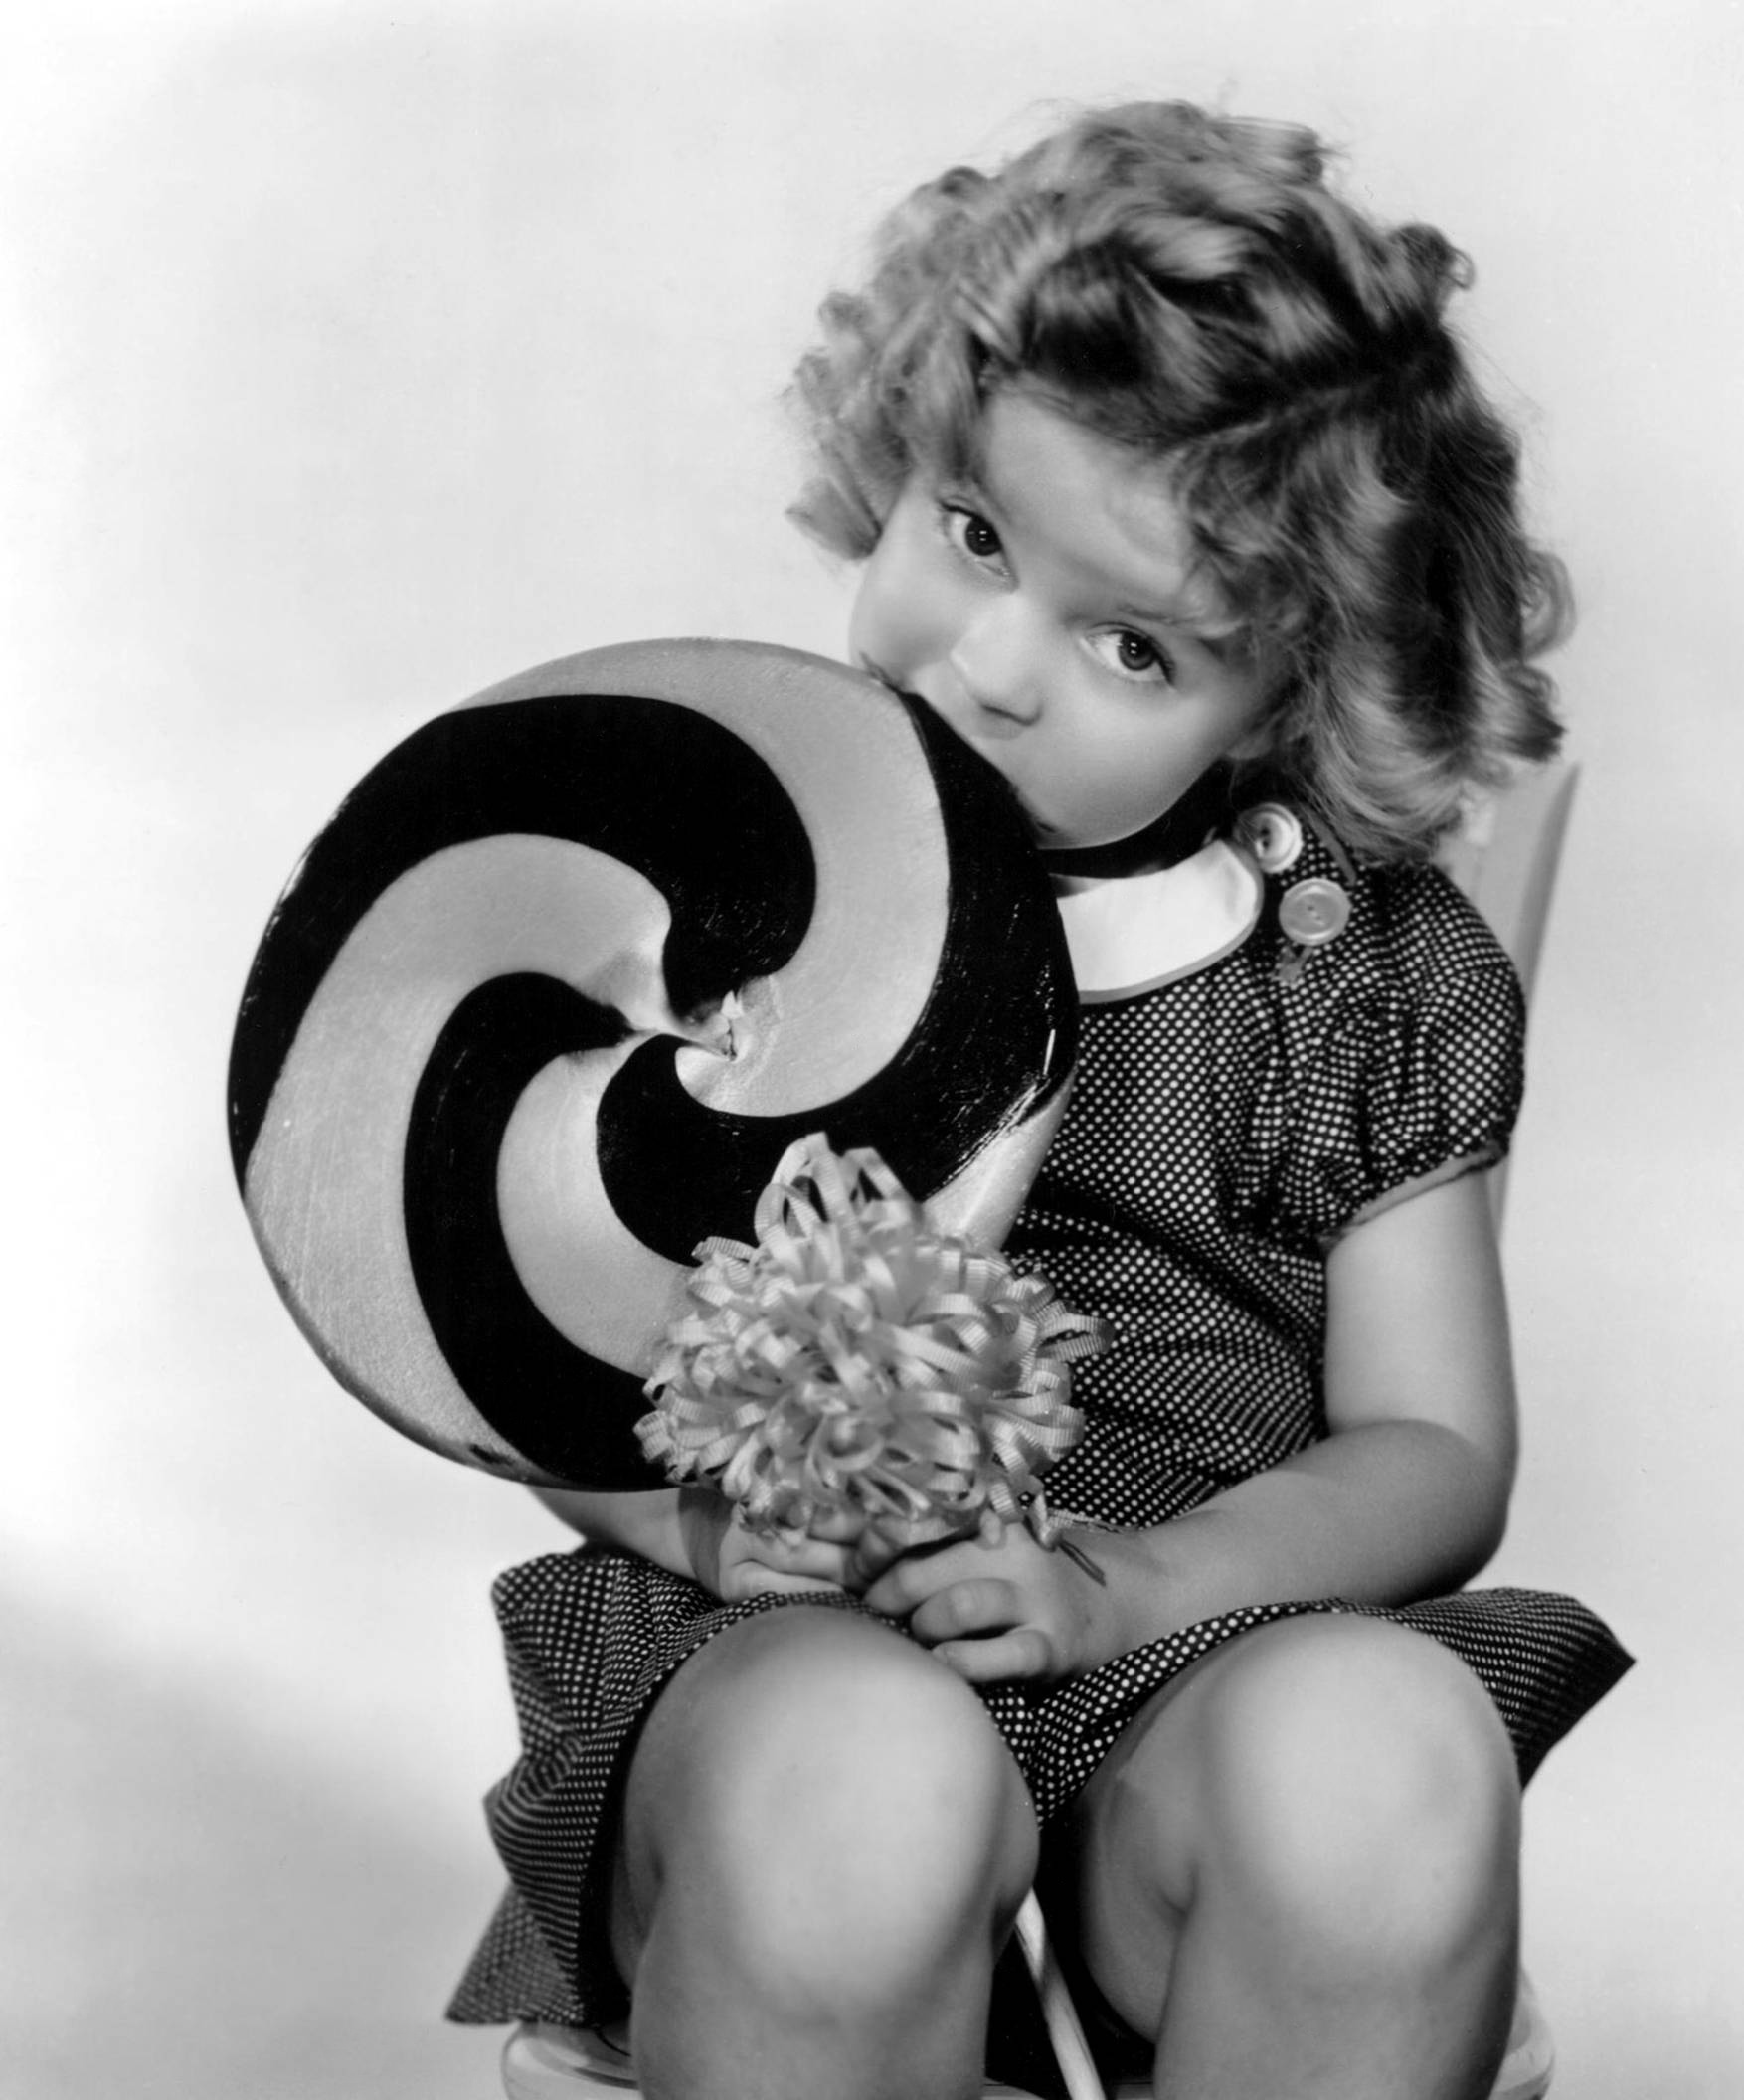 1754x2112 - Shirley Temple Wallpapers 22